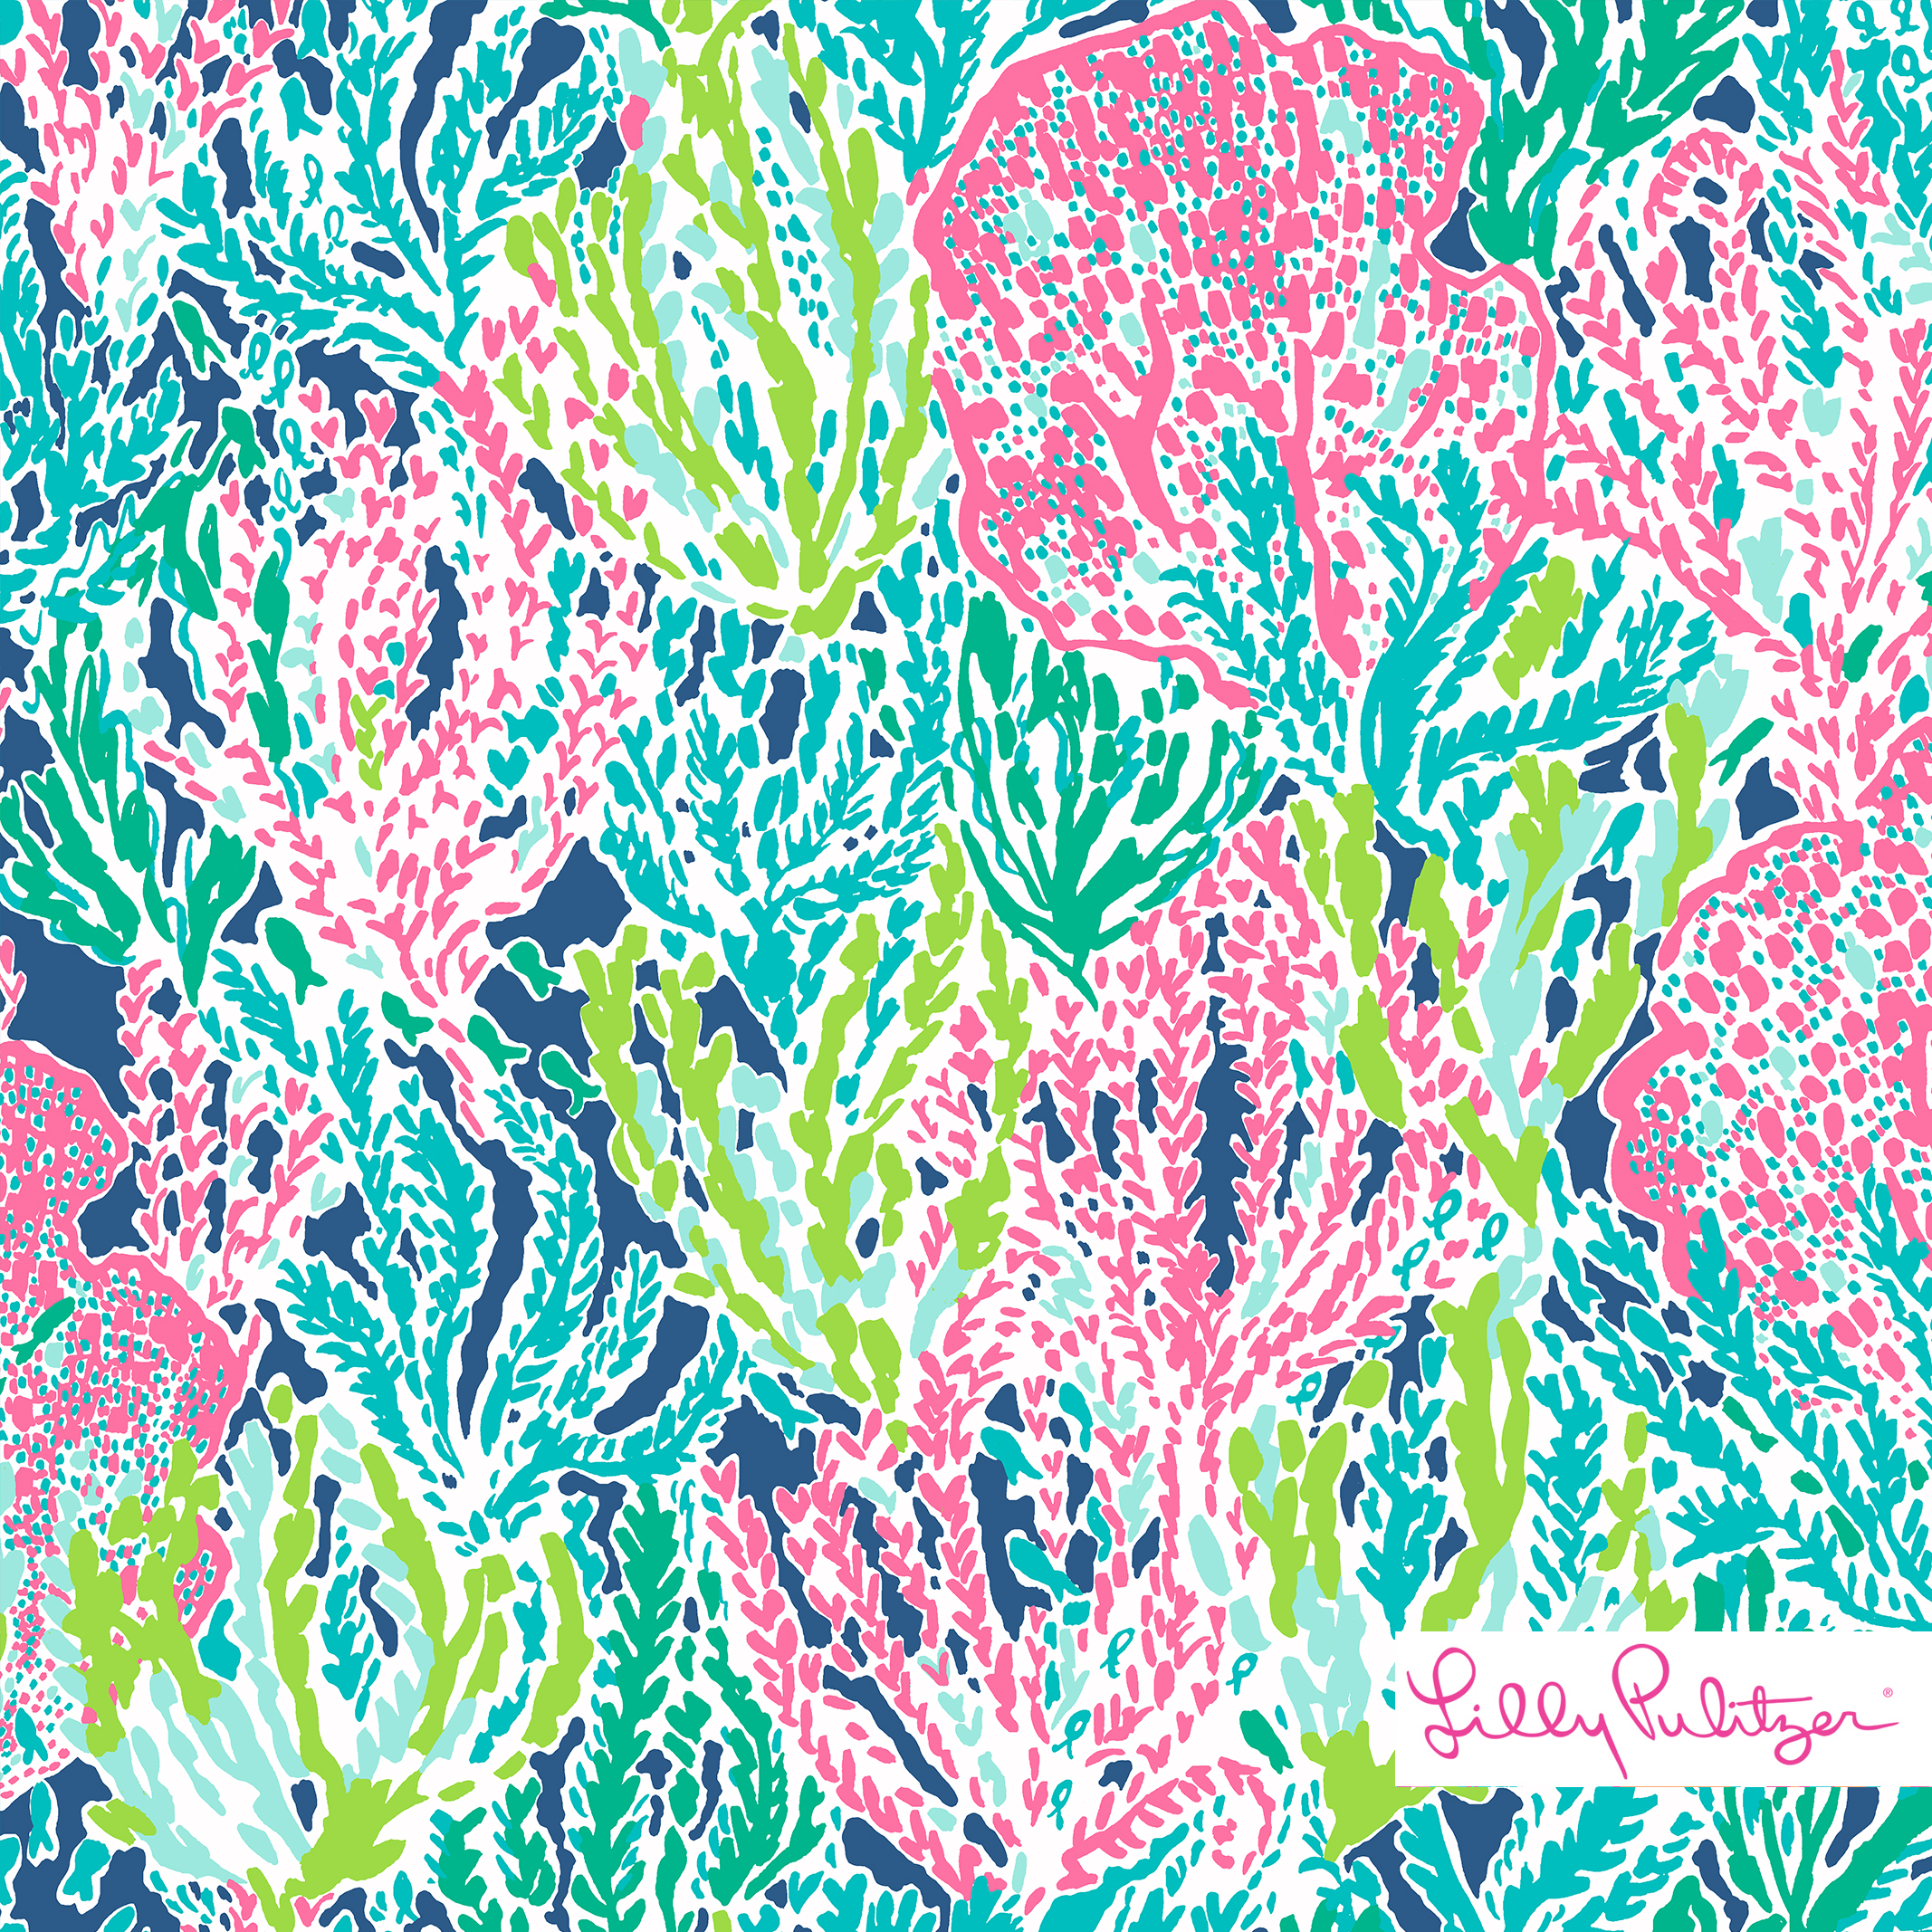 Falling Stars Live Wallpaper Download Lilly Pulitzer Wallpaper Gallery